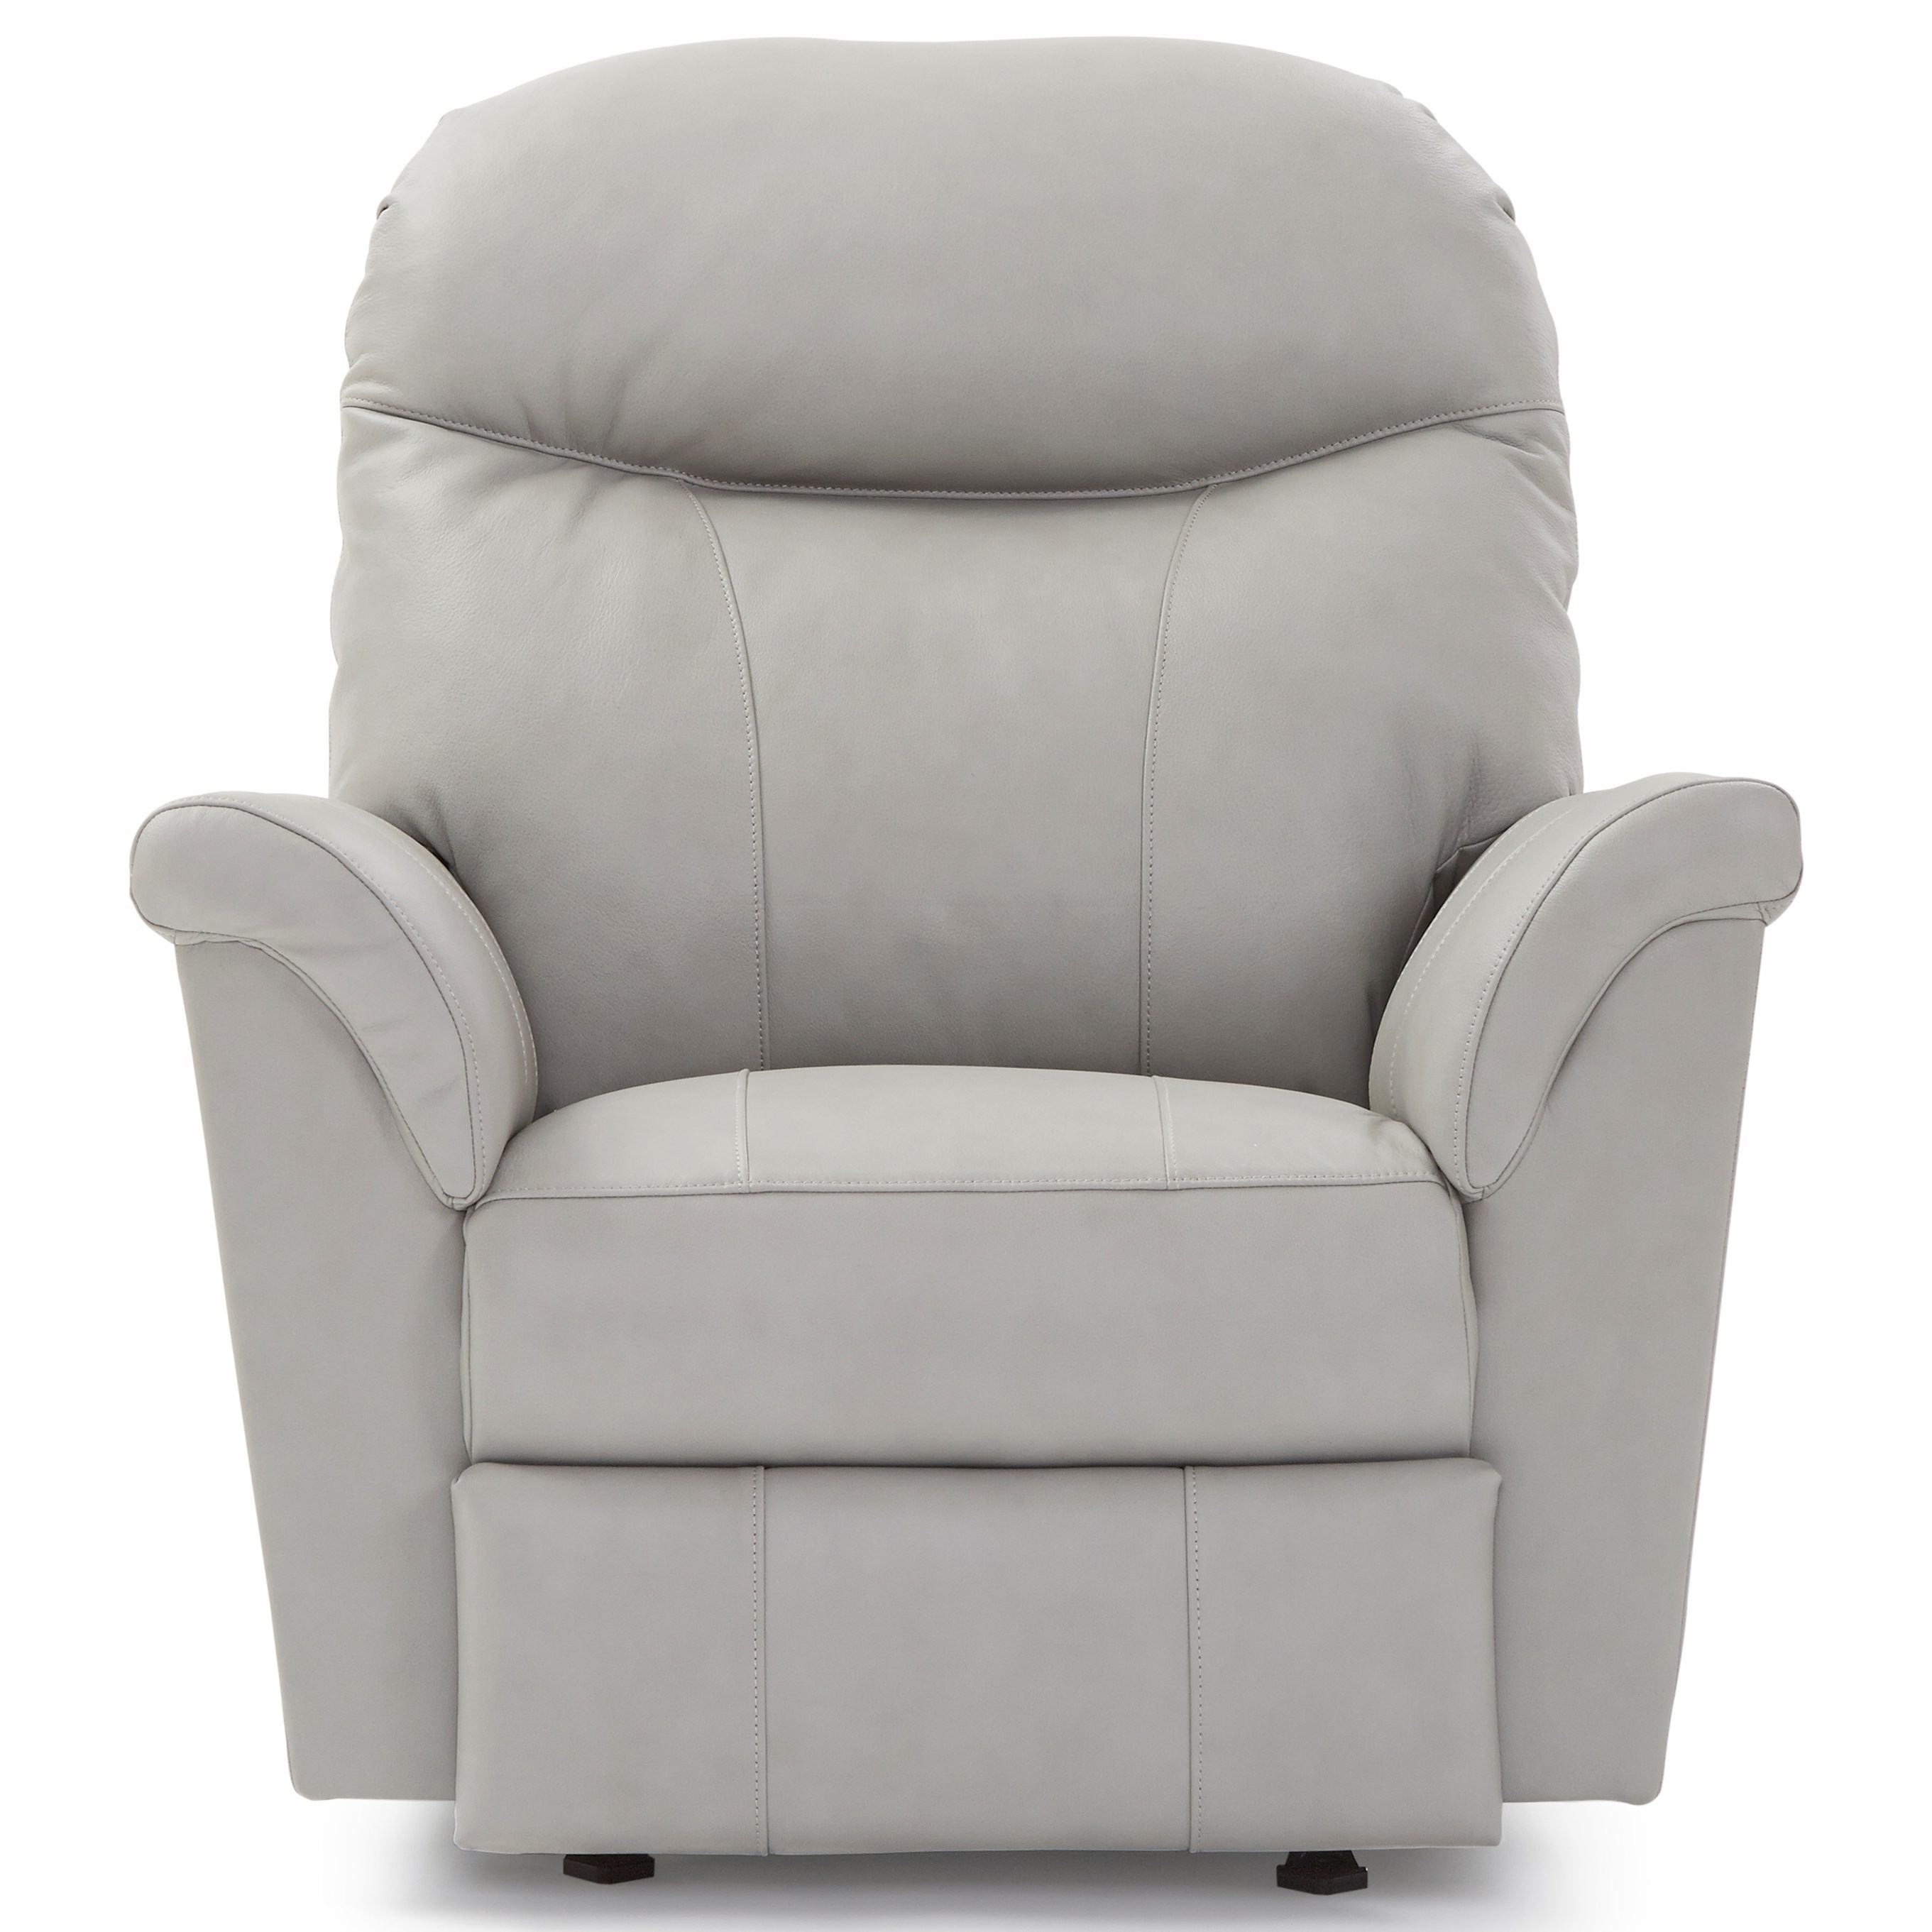 Caitlin Power Headrest Space Saver Recliner by Best Home Furnishings at Best Home Furnishings